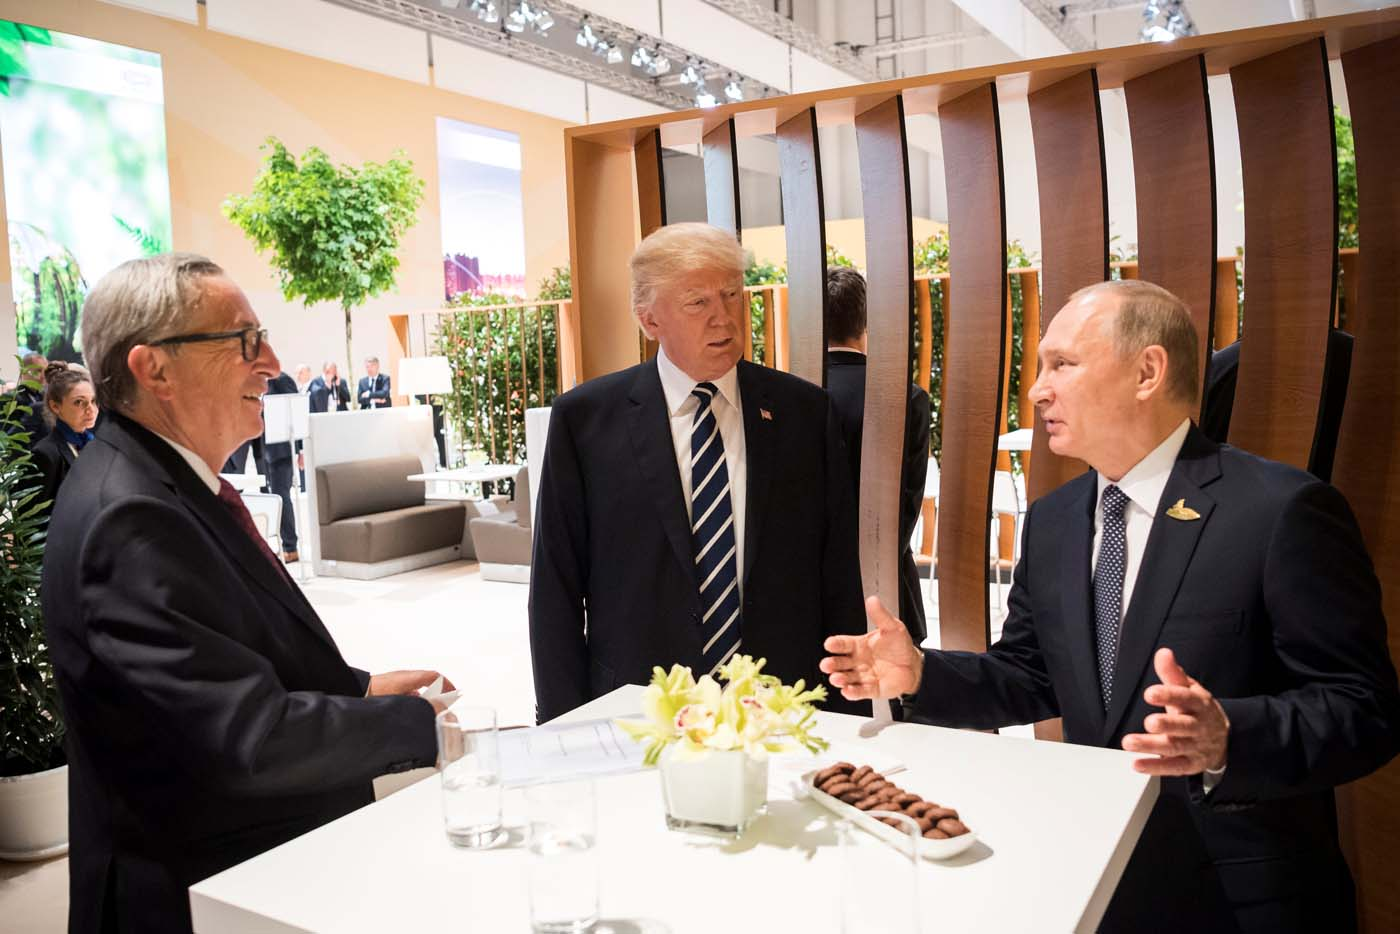 U.S. President Donald Trump, Russia's President Vladimir Putin and President of the European Commission Jean-Claude Juncker talk during the G20 Summit in Hamburg, Germany in this still image taken from video, July 7, 2017. REUTERS/Steffen Kugler/Courtesy of Bundesregierung/Handout via REUTERS ATTENTION EDITORS - THIS PICTURE WAS PROVIDED BY A THIRD PARTY. NO RESALES. NO ARCHIVE